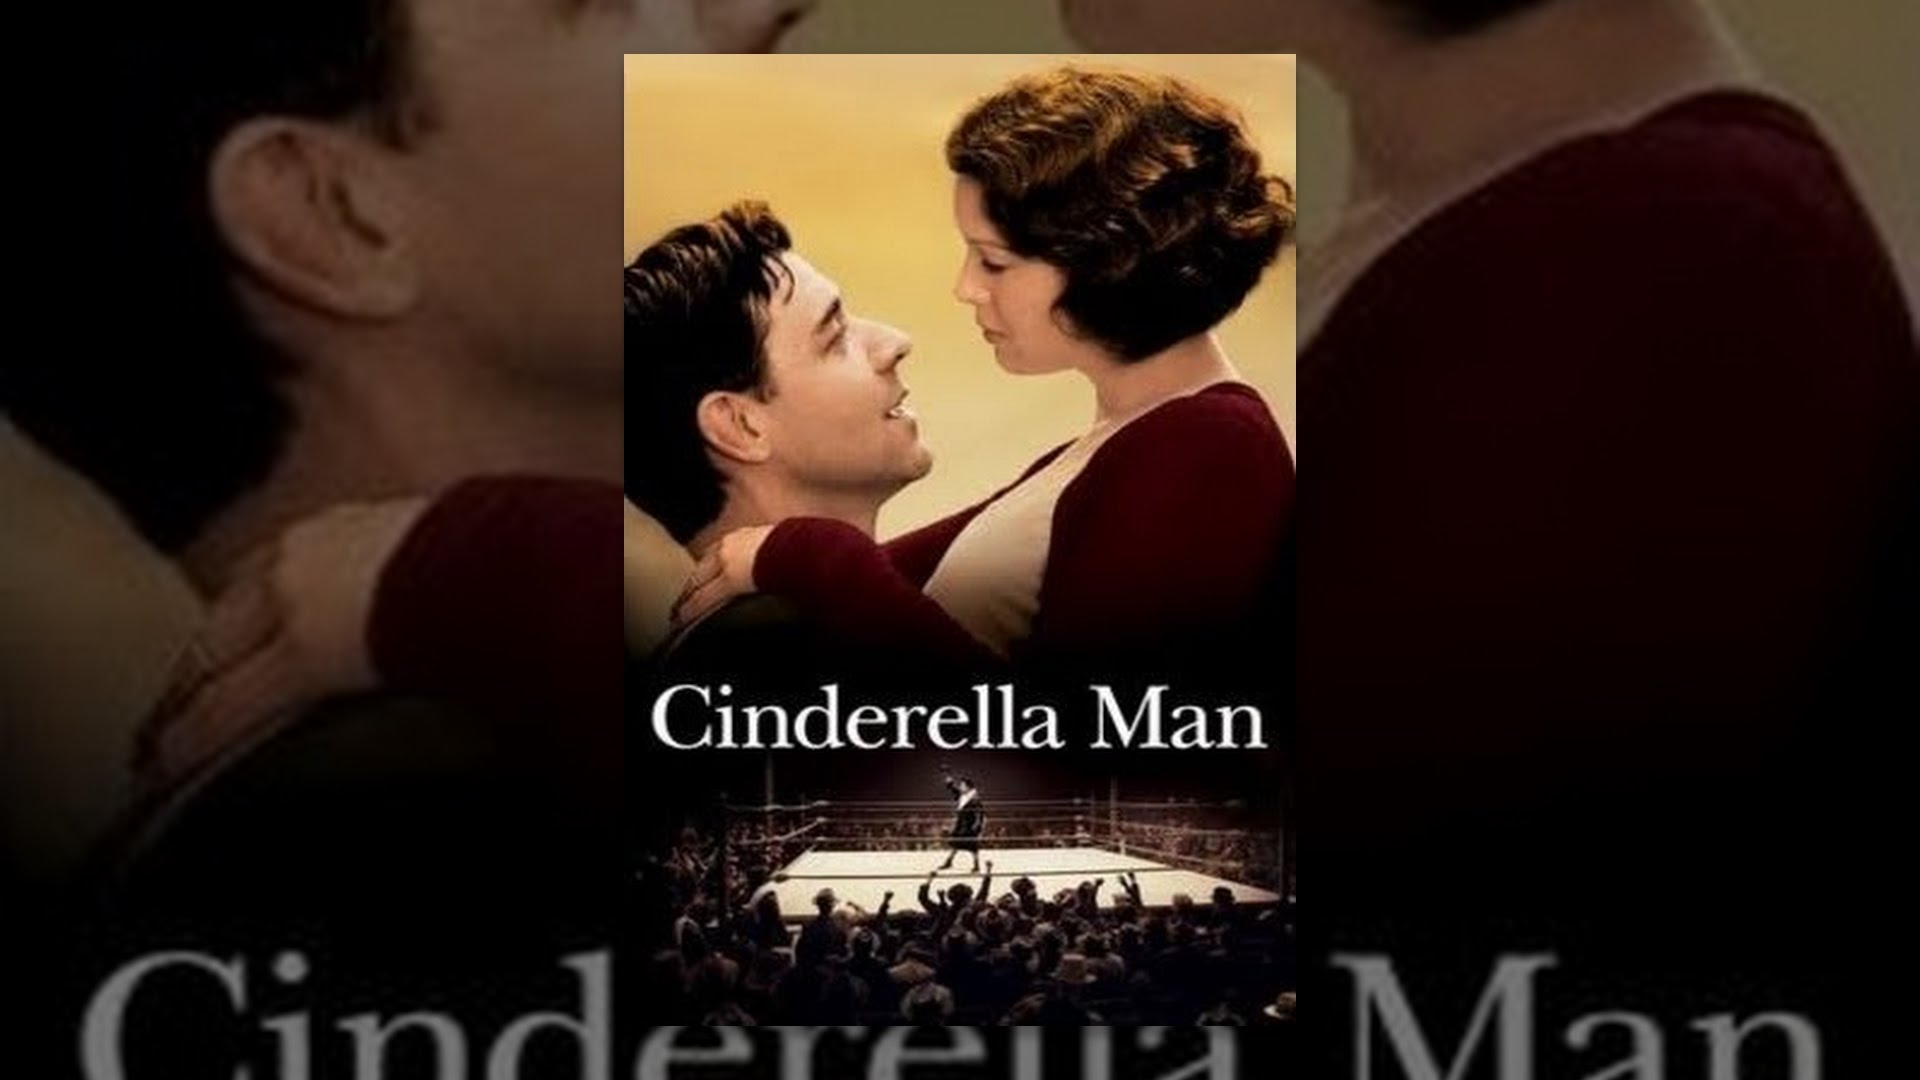 Russell crowe cinderella man workout - photo#25